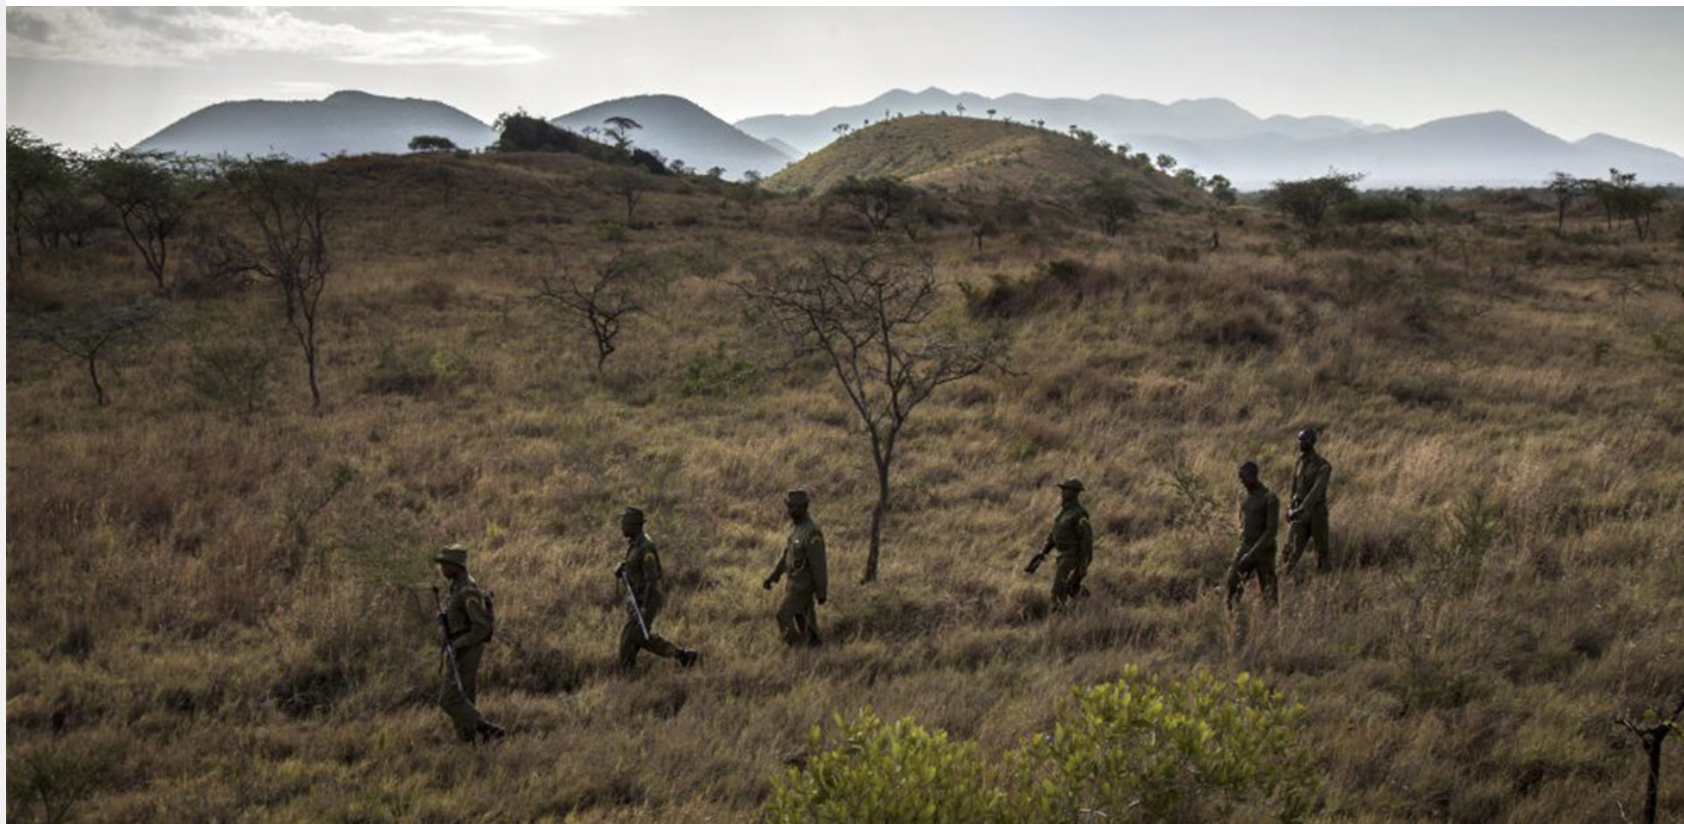 The Most Valued Anti-Poaching Equipment May Surprise You - EcoWatch